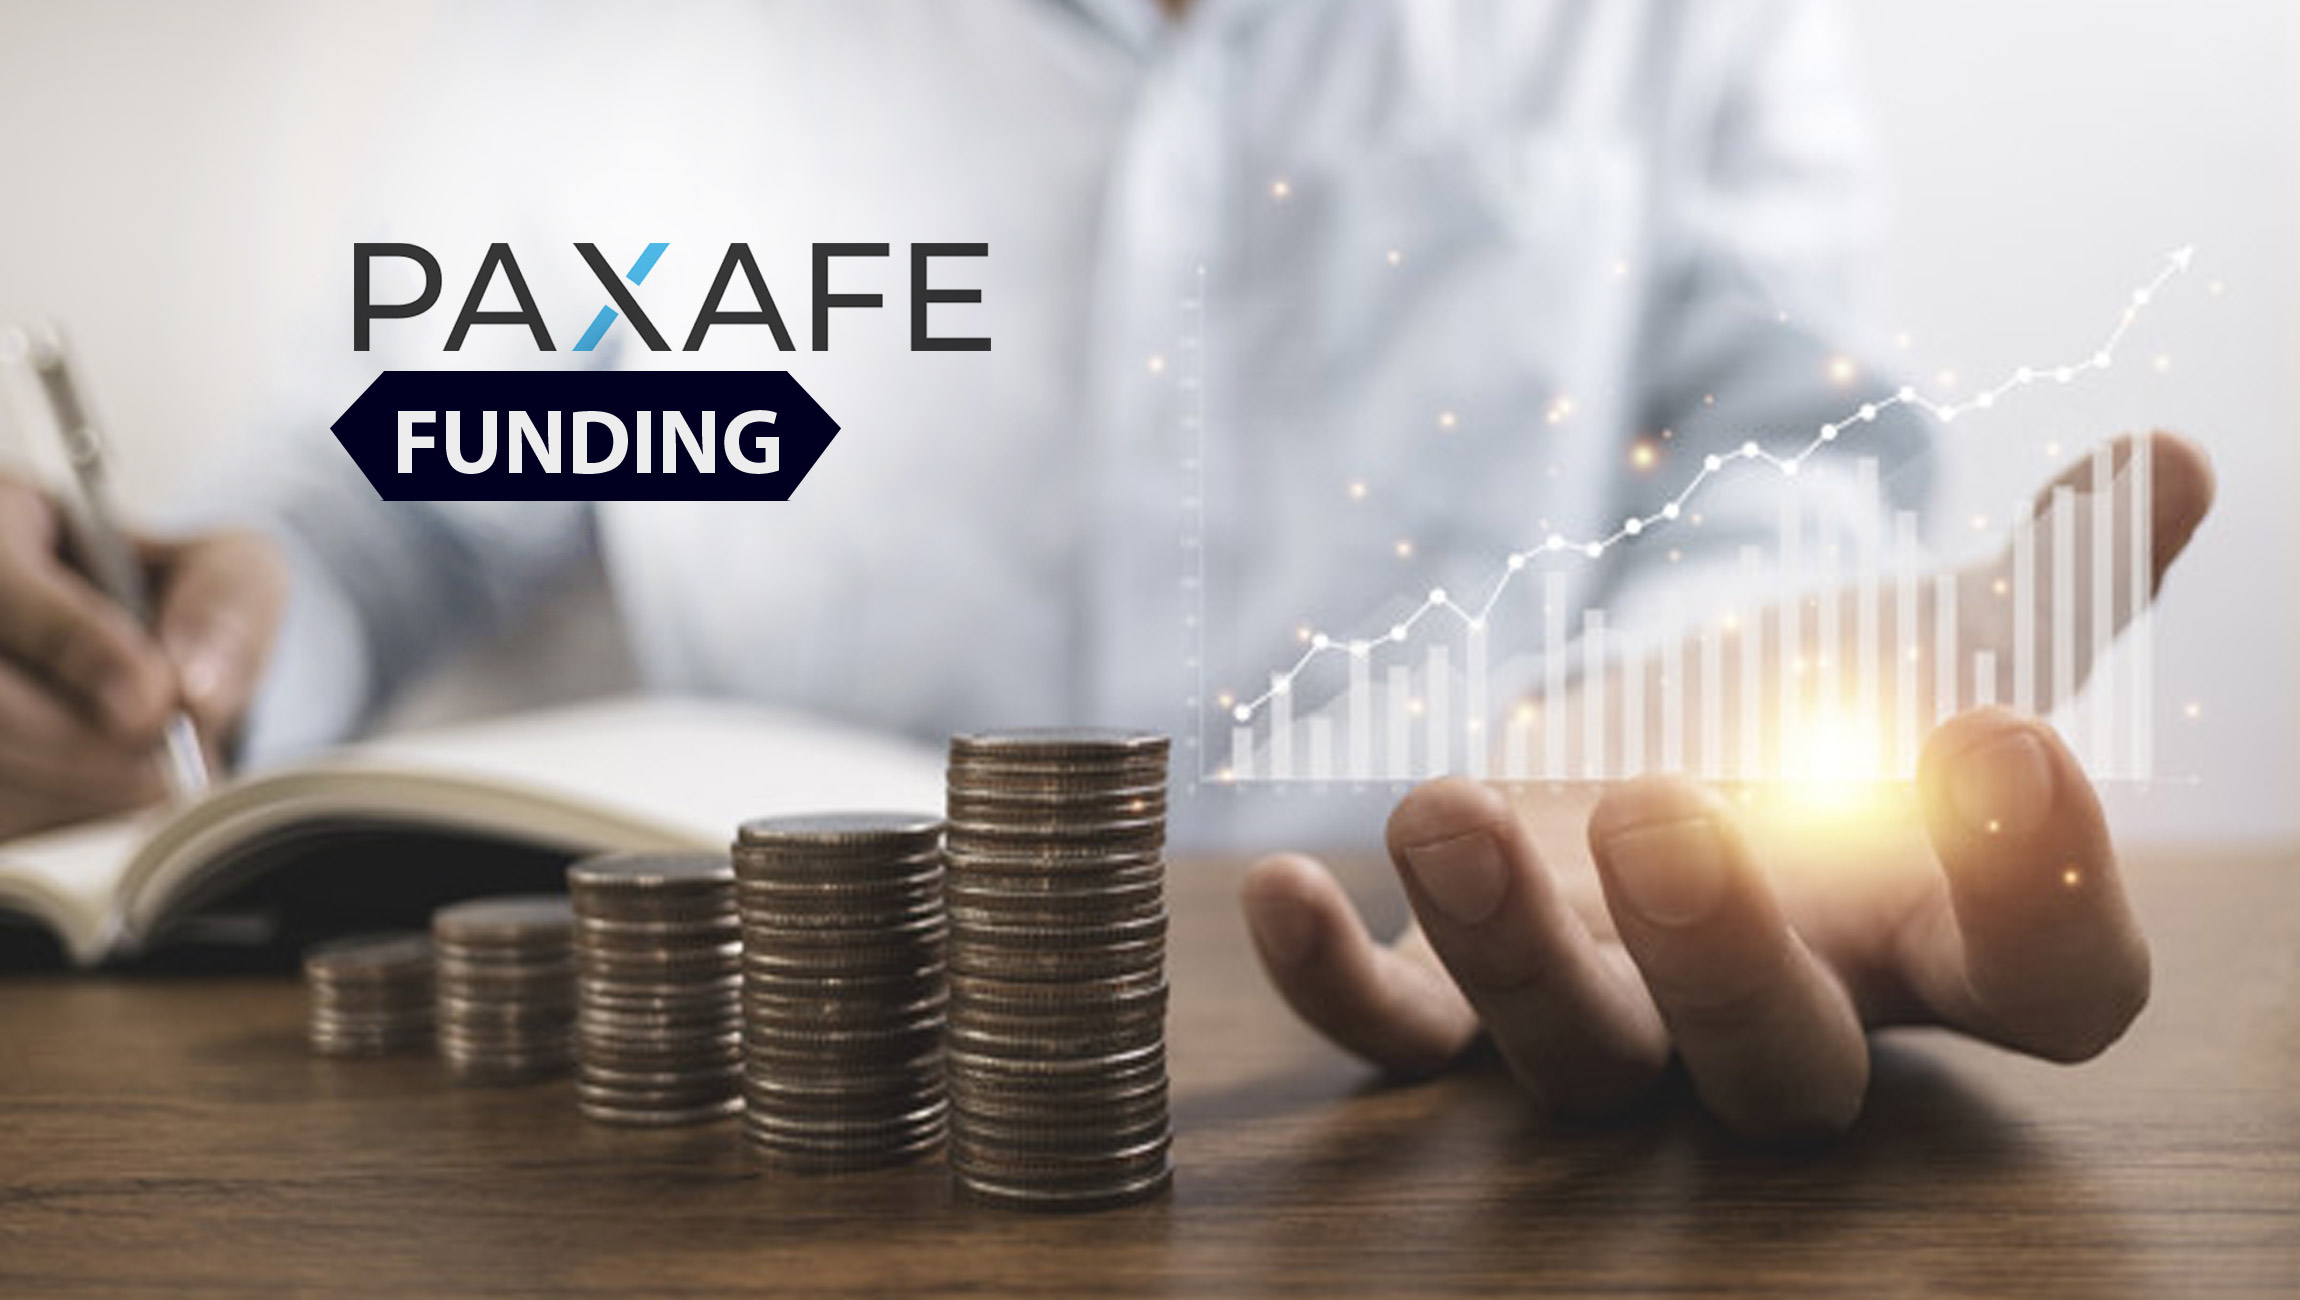 PAXAFE Raises New Round Of Funding To Mitigate Risks Involved In B2B Shipping With AI-Enabled Contextualization Platform